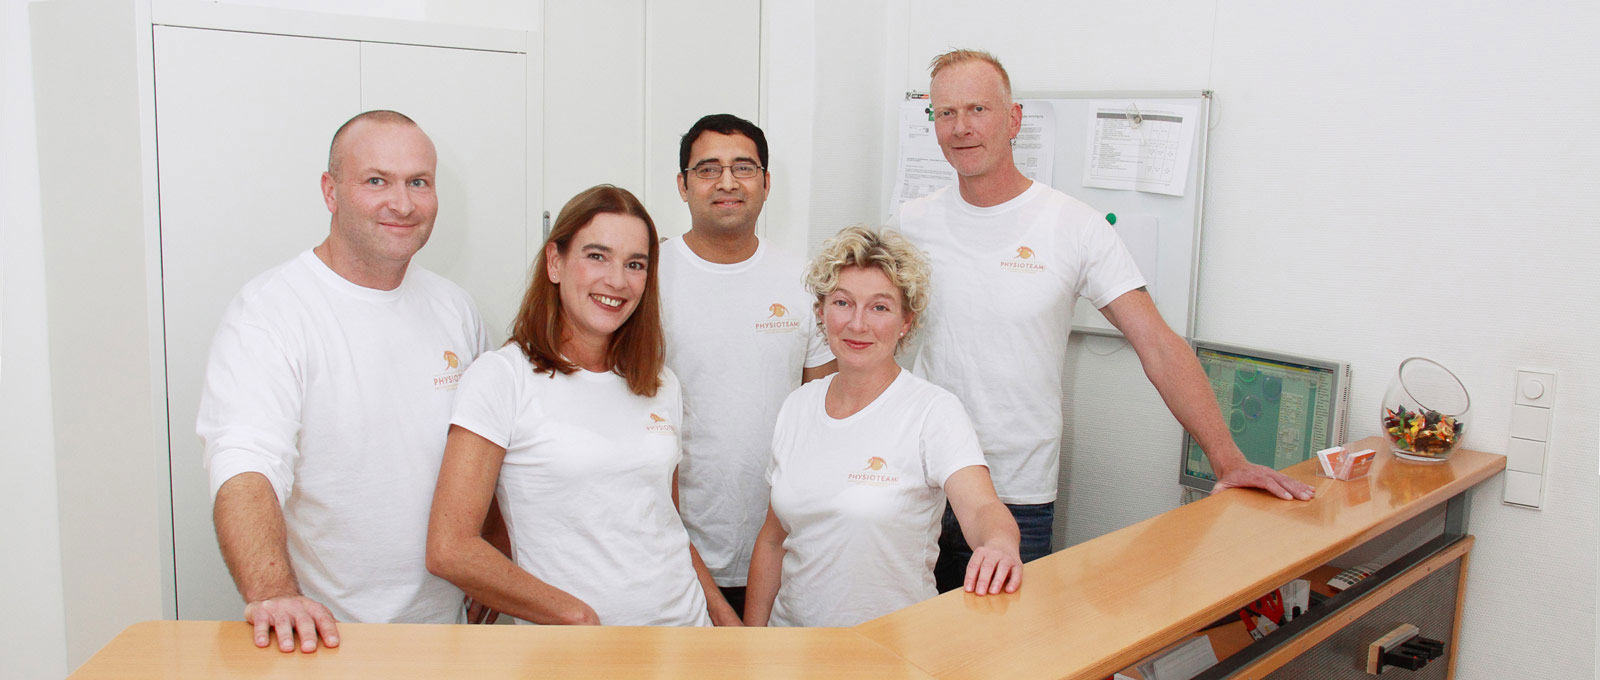 Euer Physioteam Lichtenrade